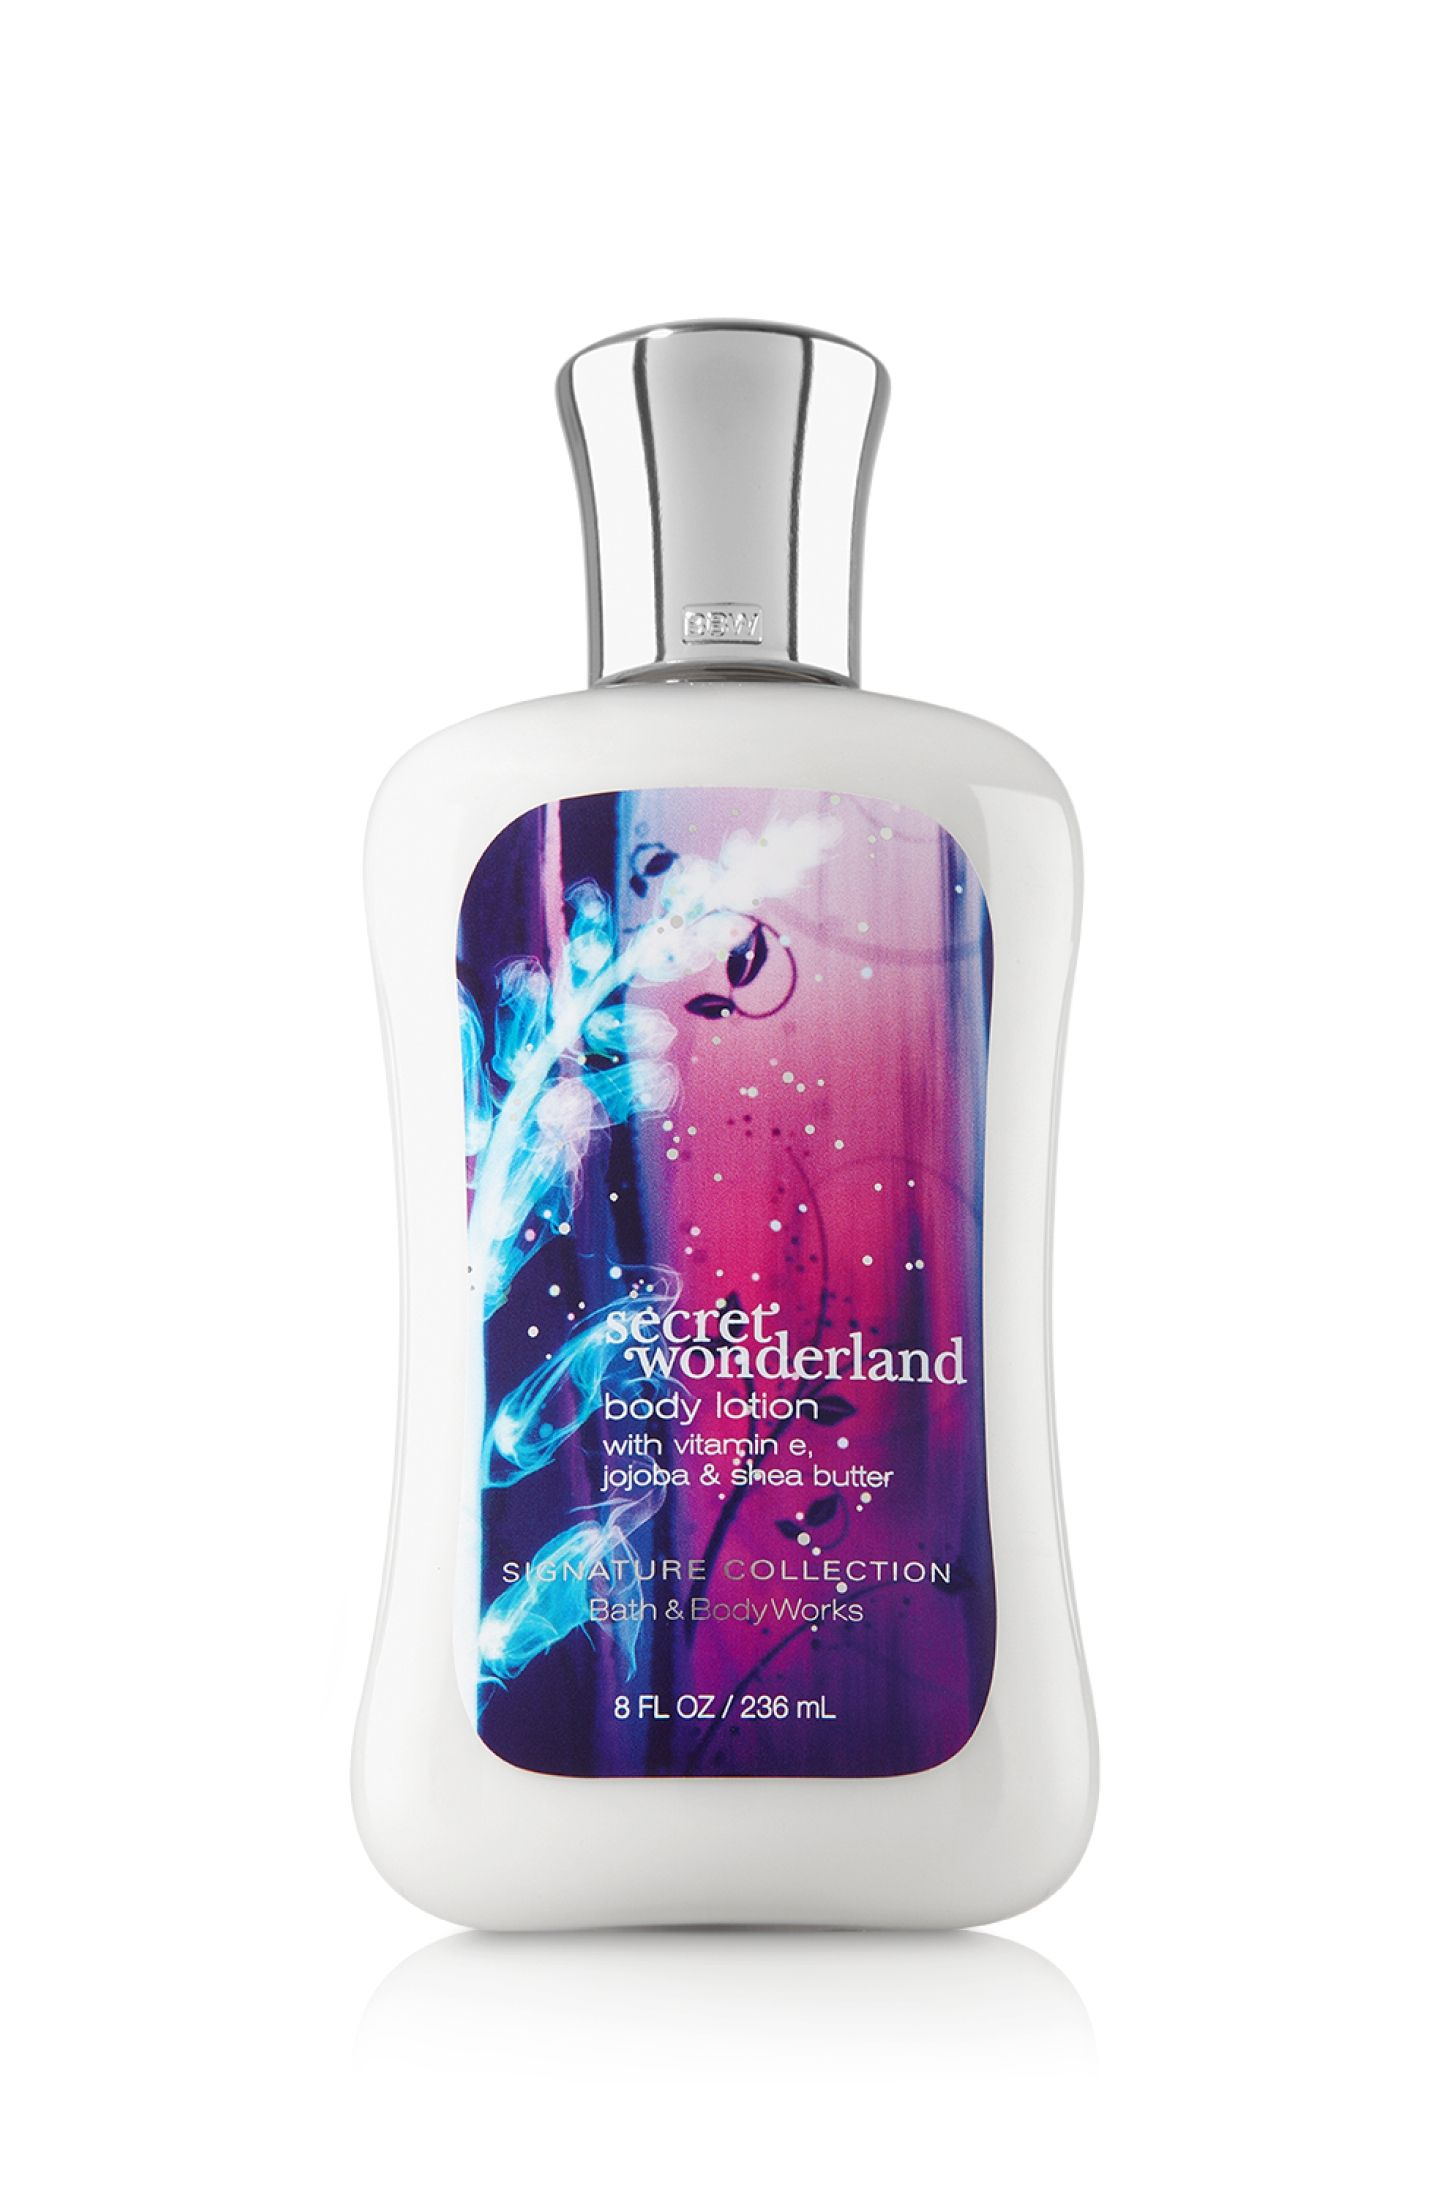 Secret Wonderland Body Lotion Signature Collection Bath